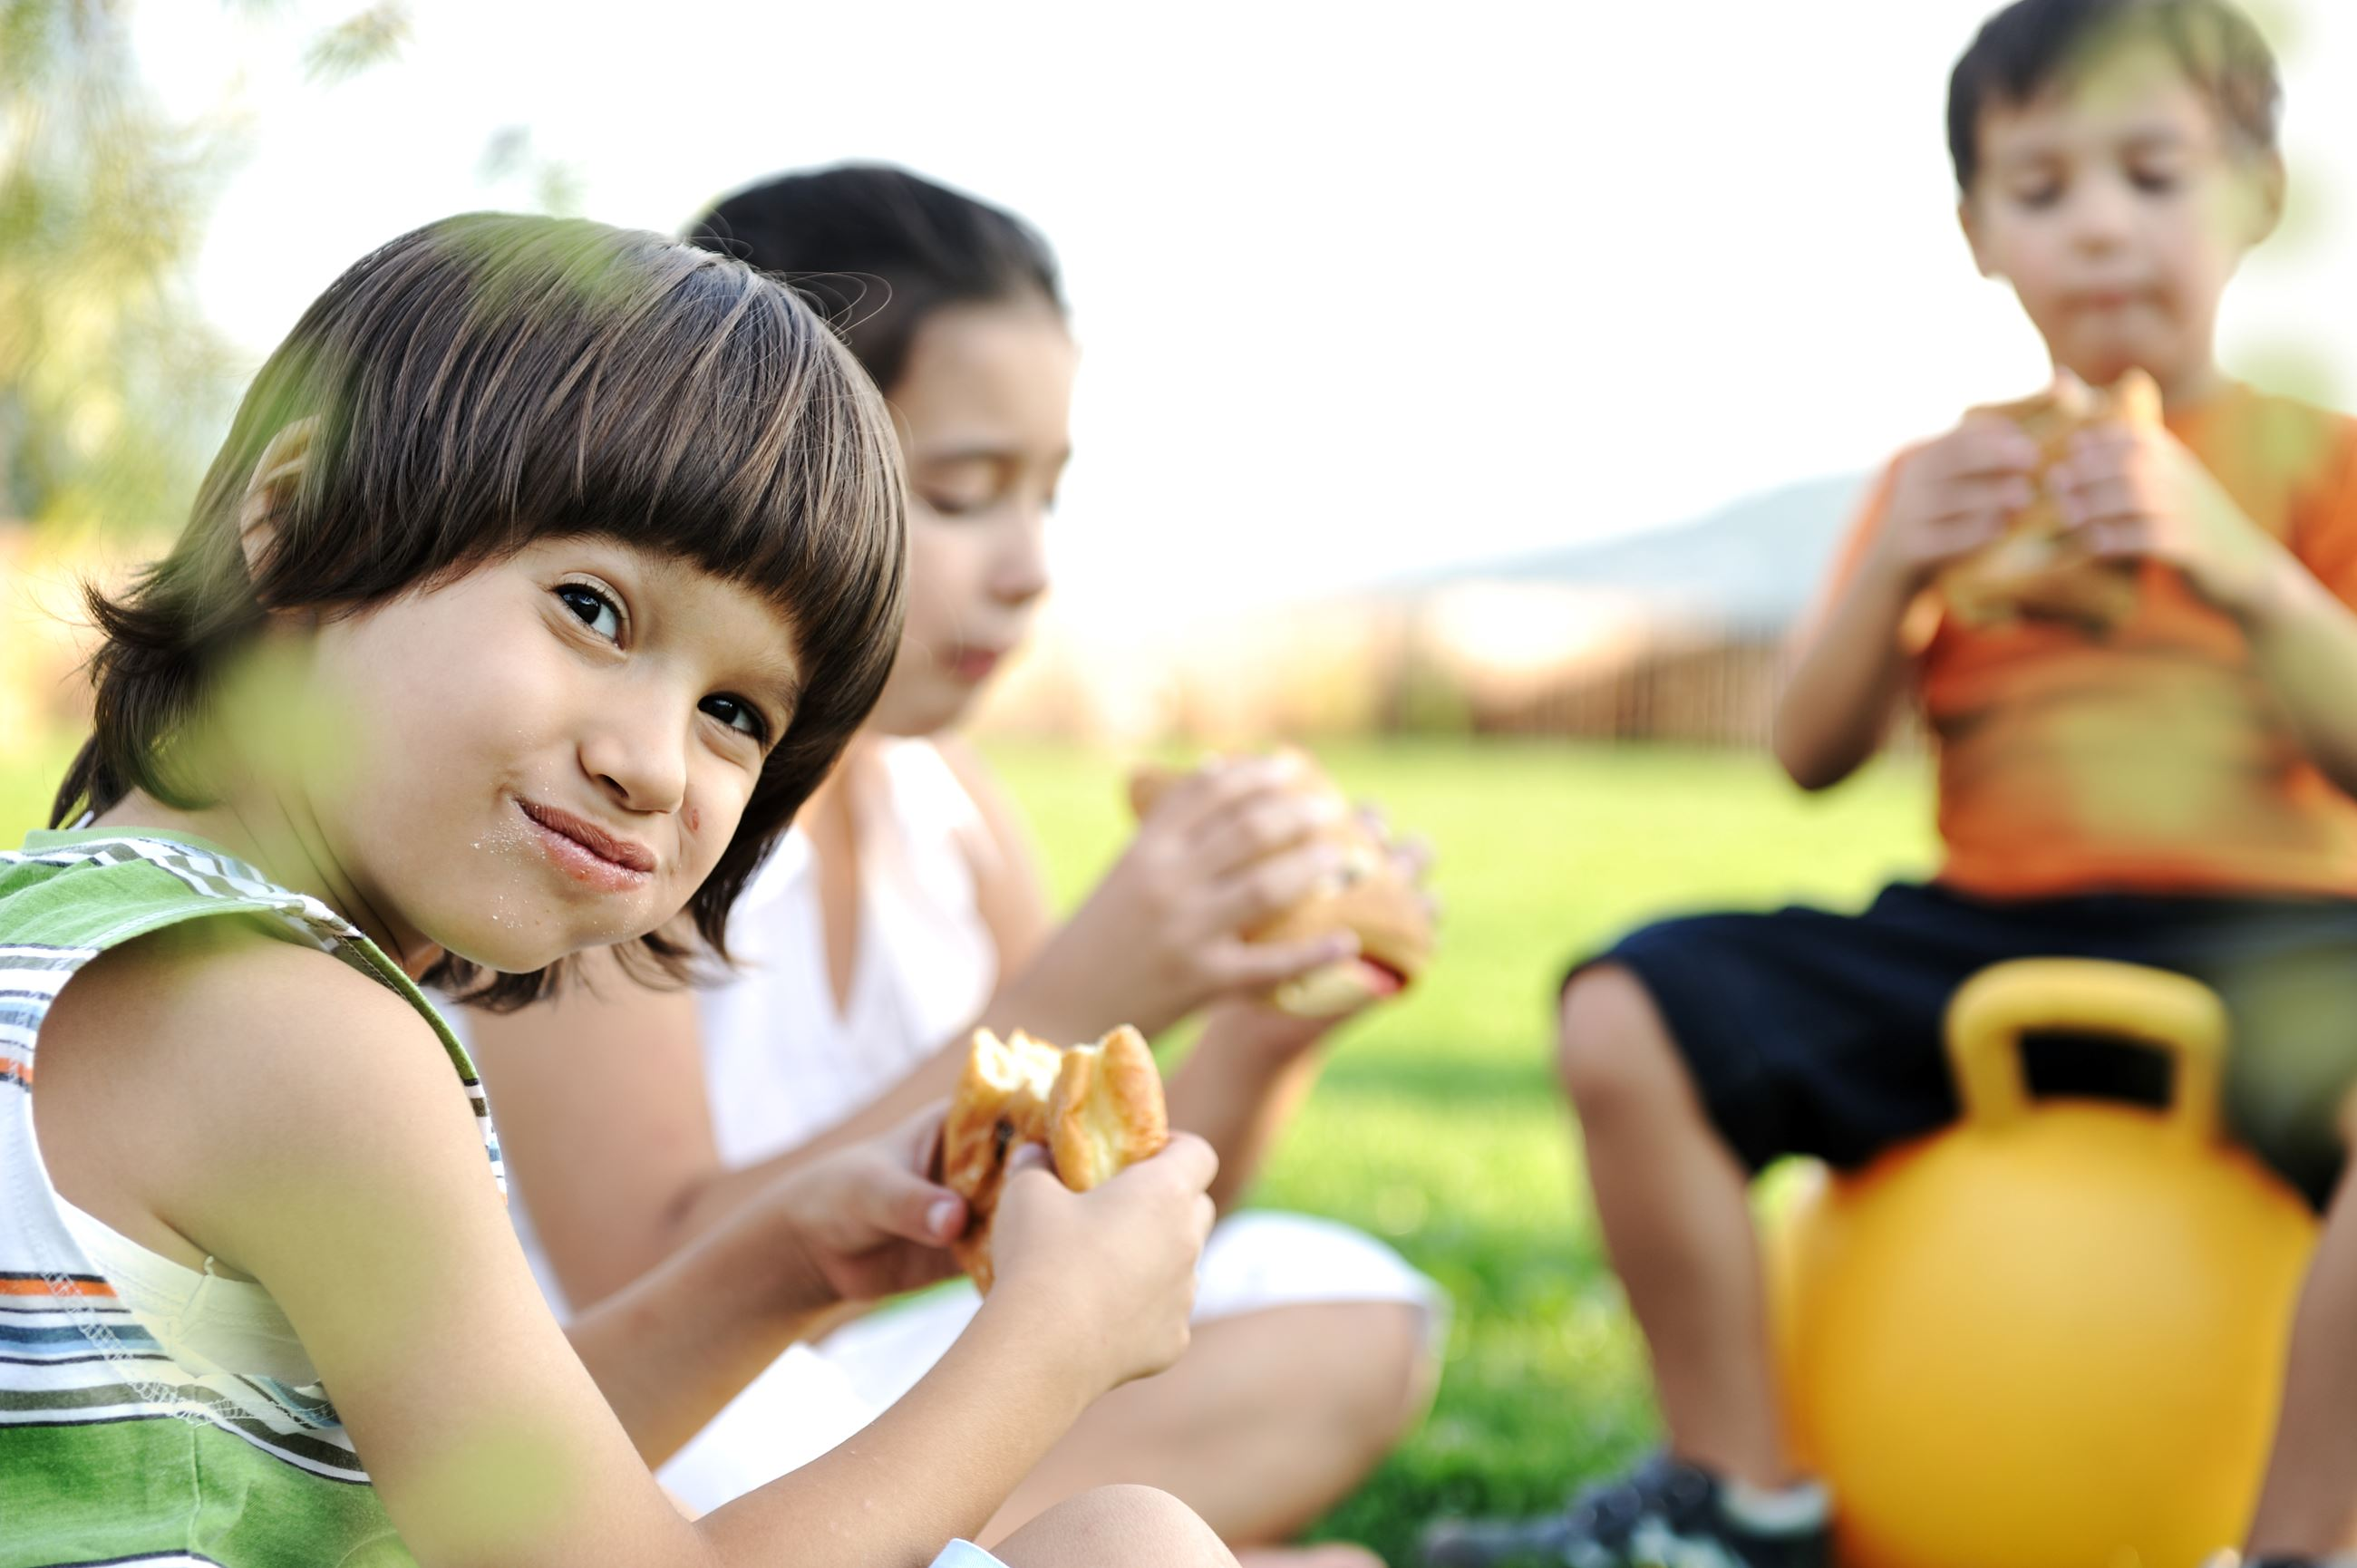 kids eating food image